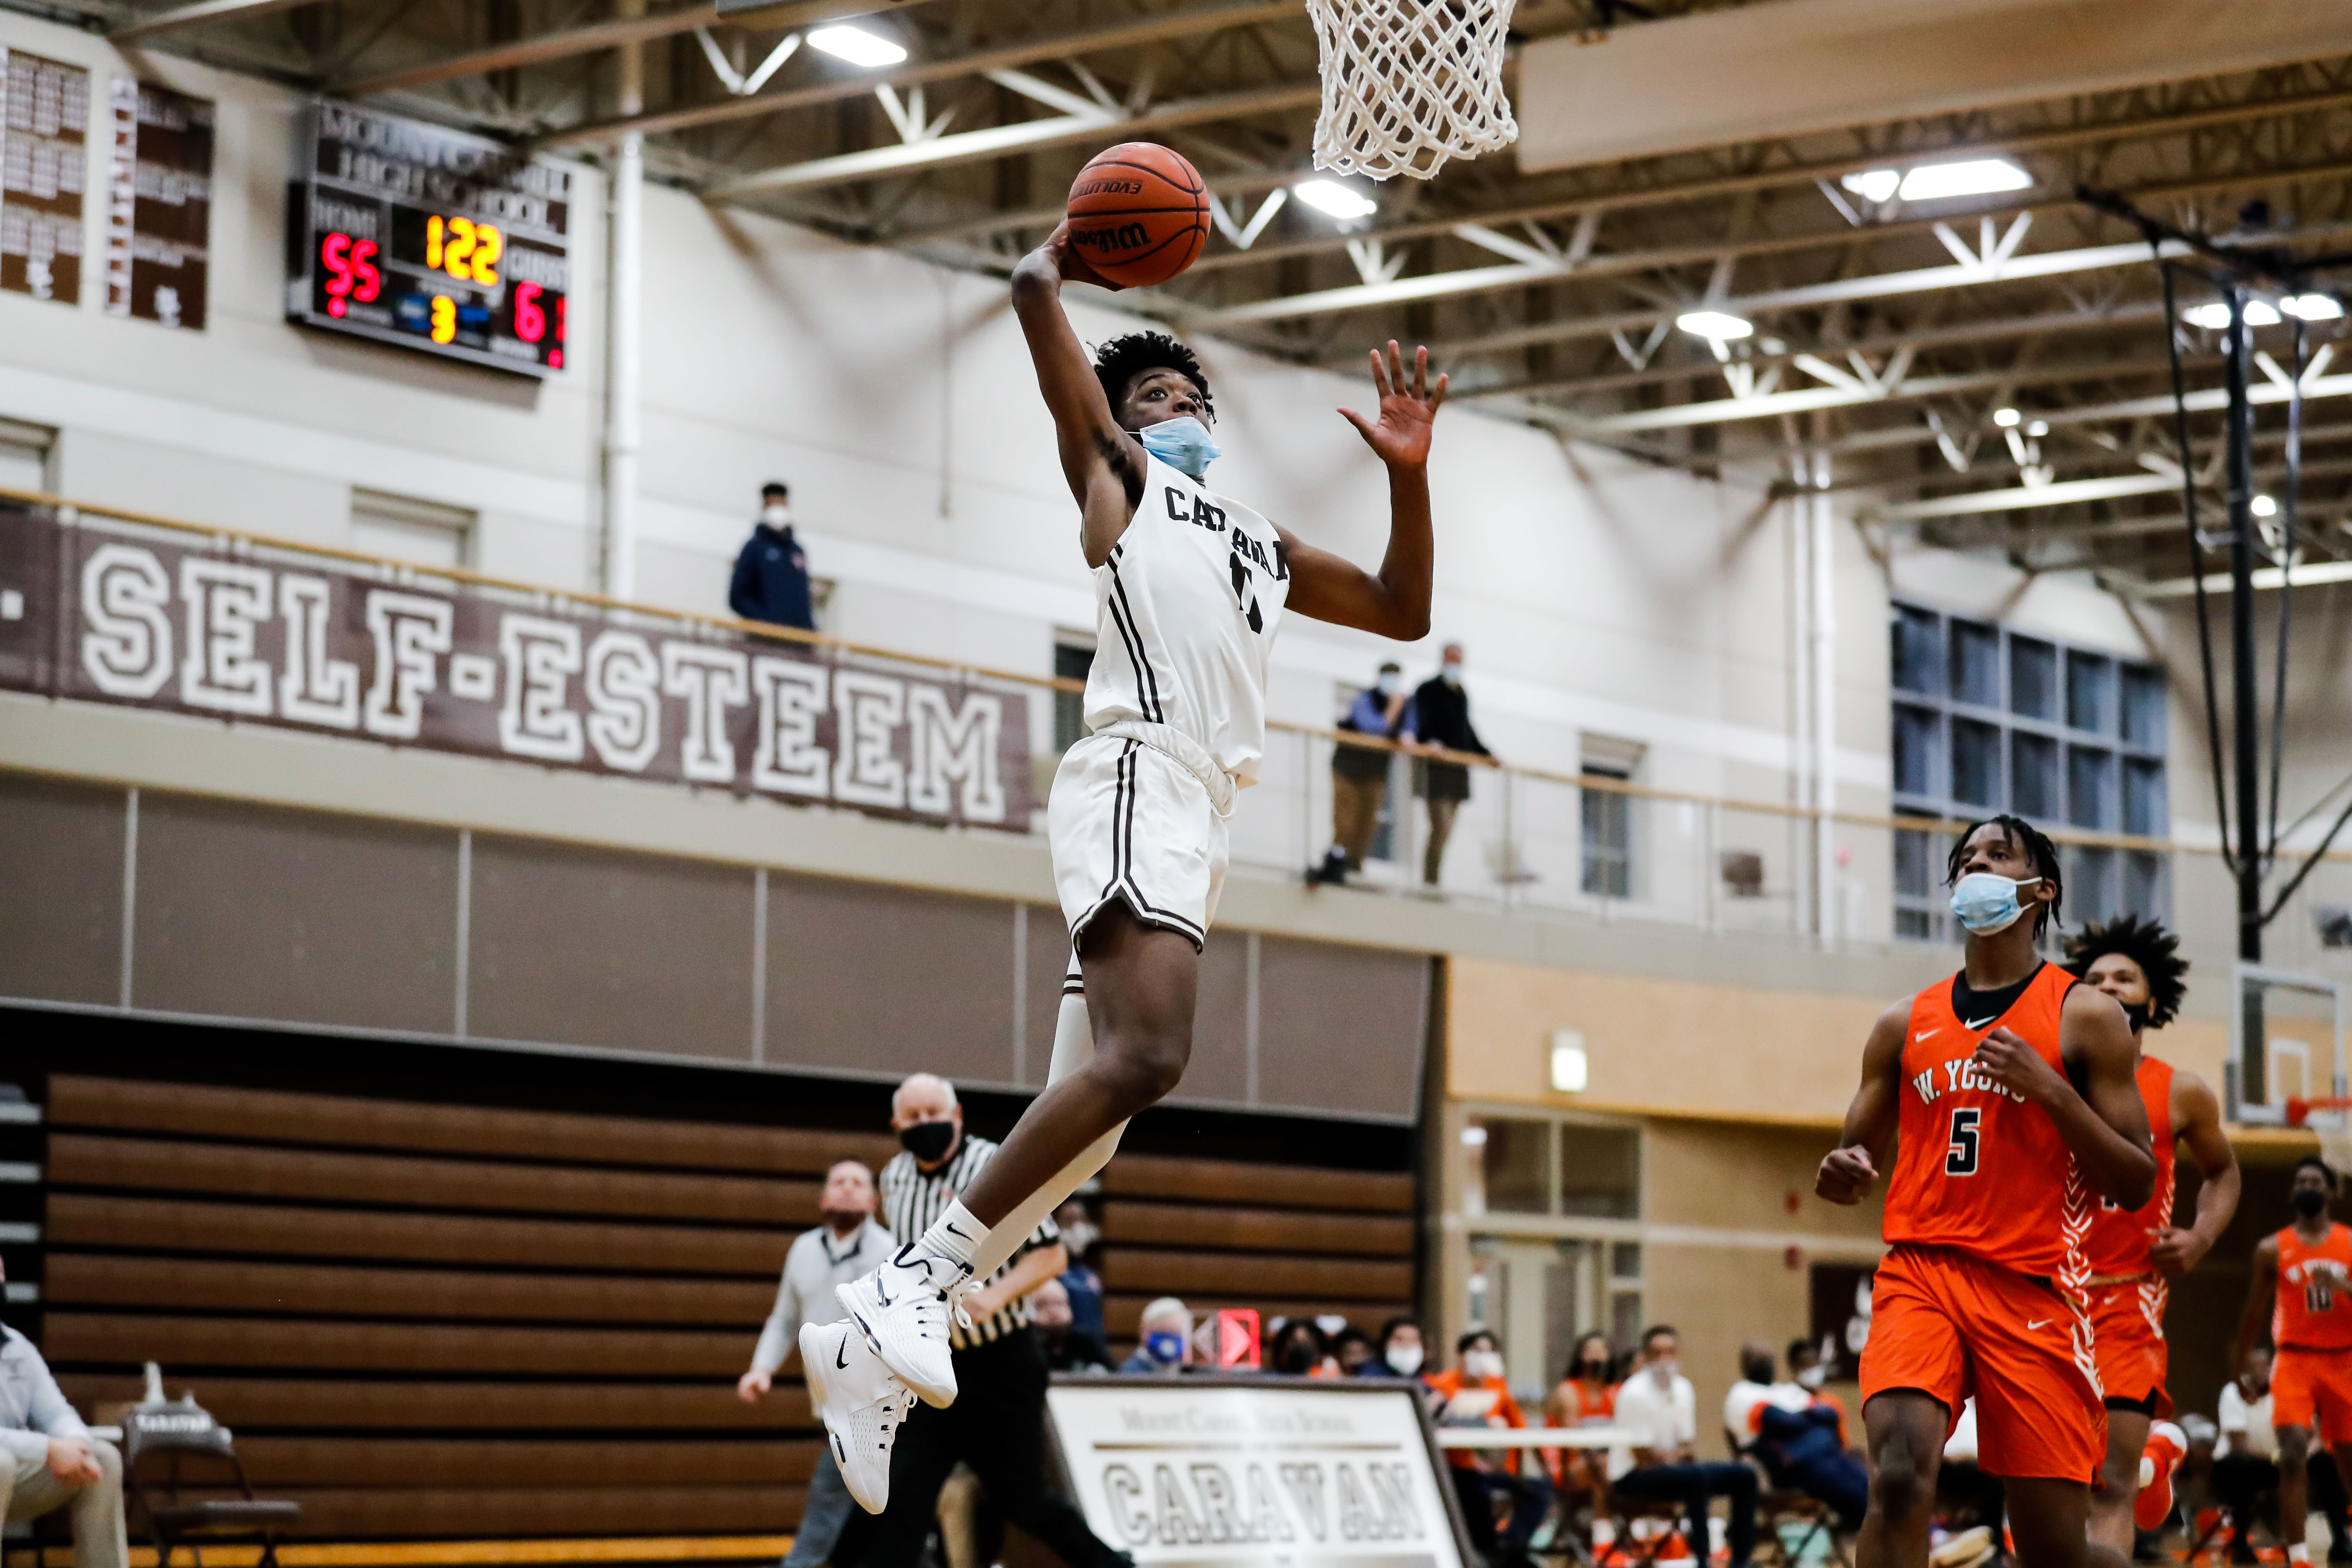 Mount Carmel's Myles Griffith (11) goes to the basket over Young.